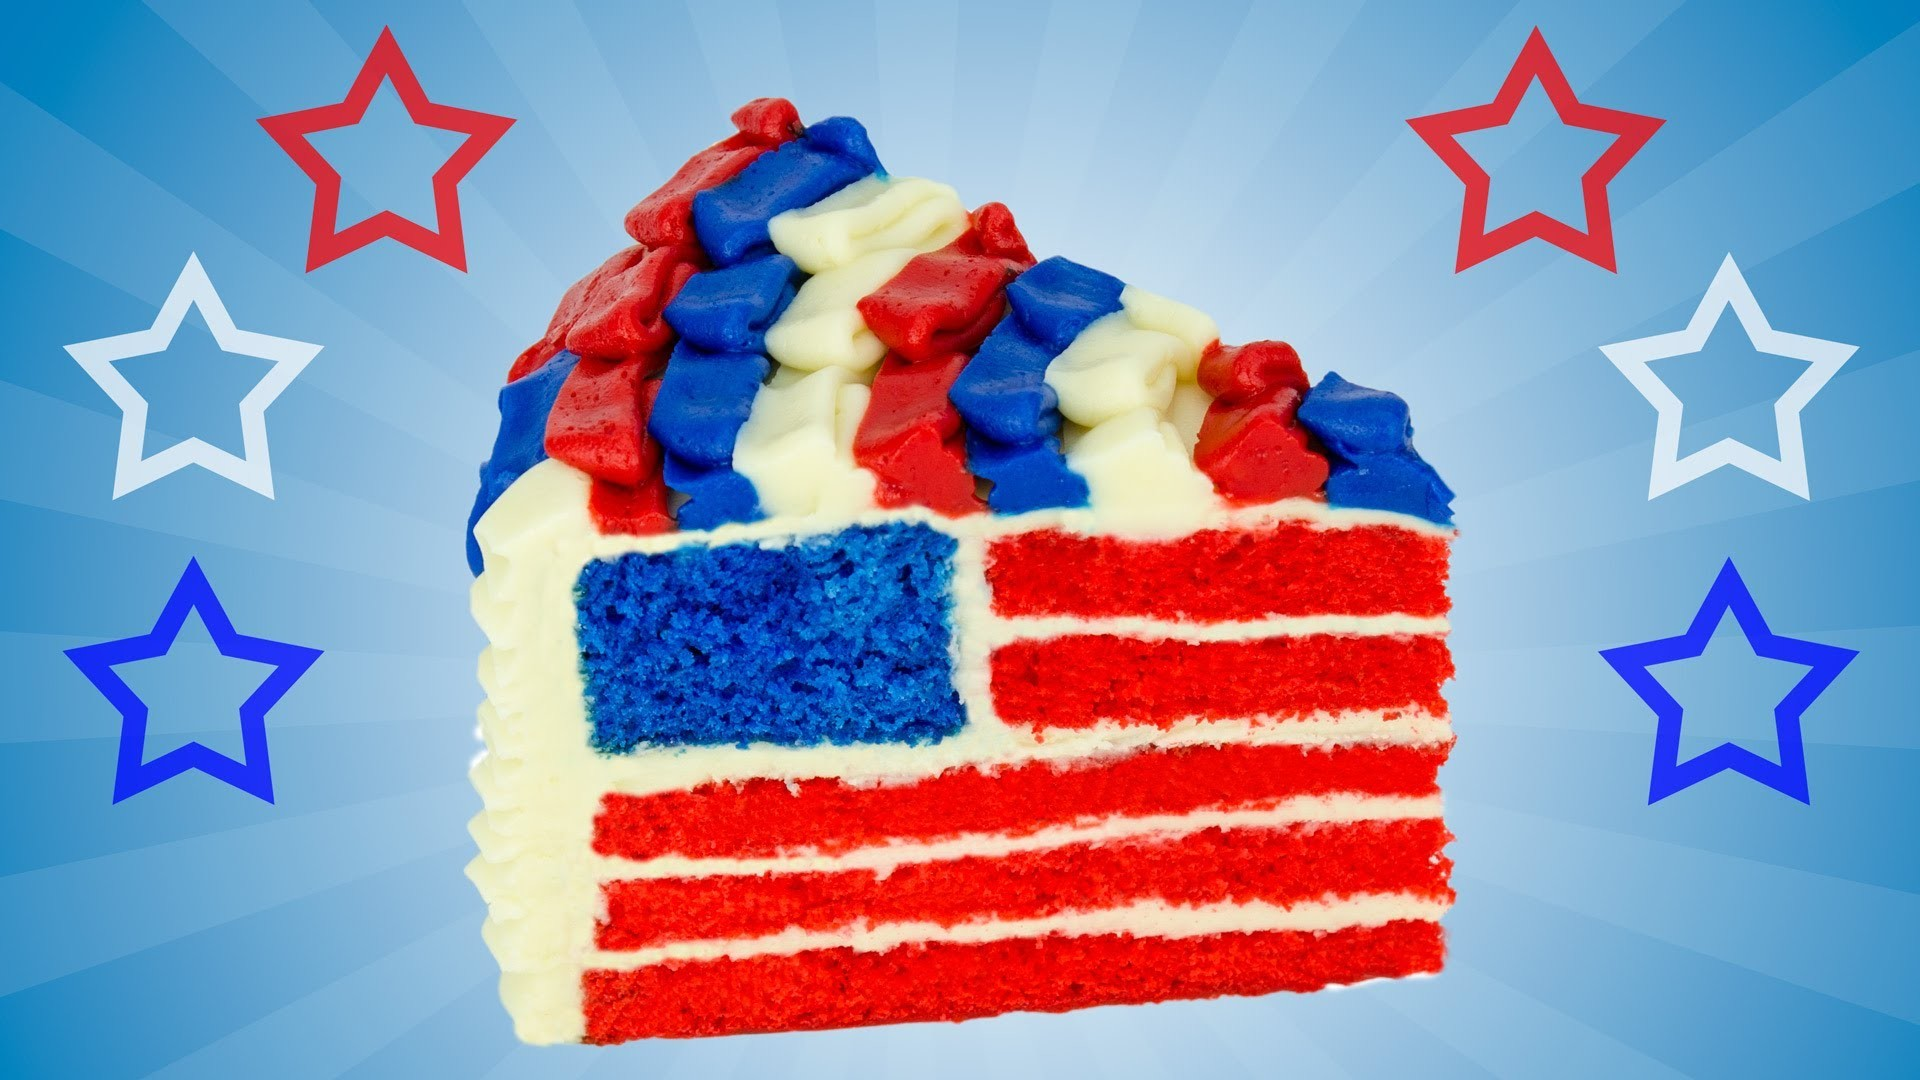 American Flag Cake for The 4th of July Dessert by Cookies Cupcakes and Cardio